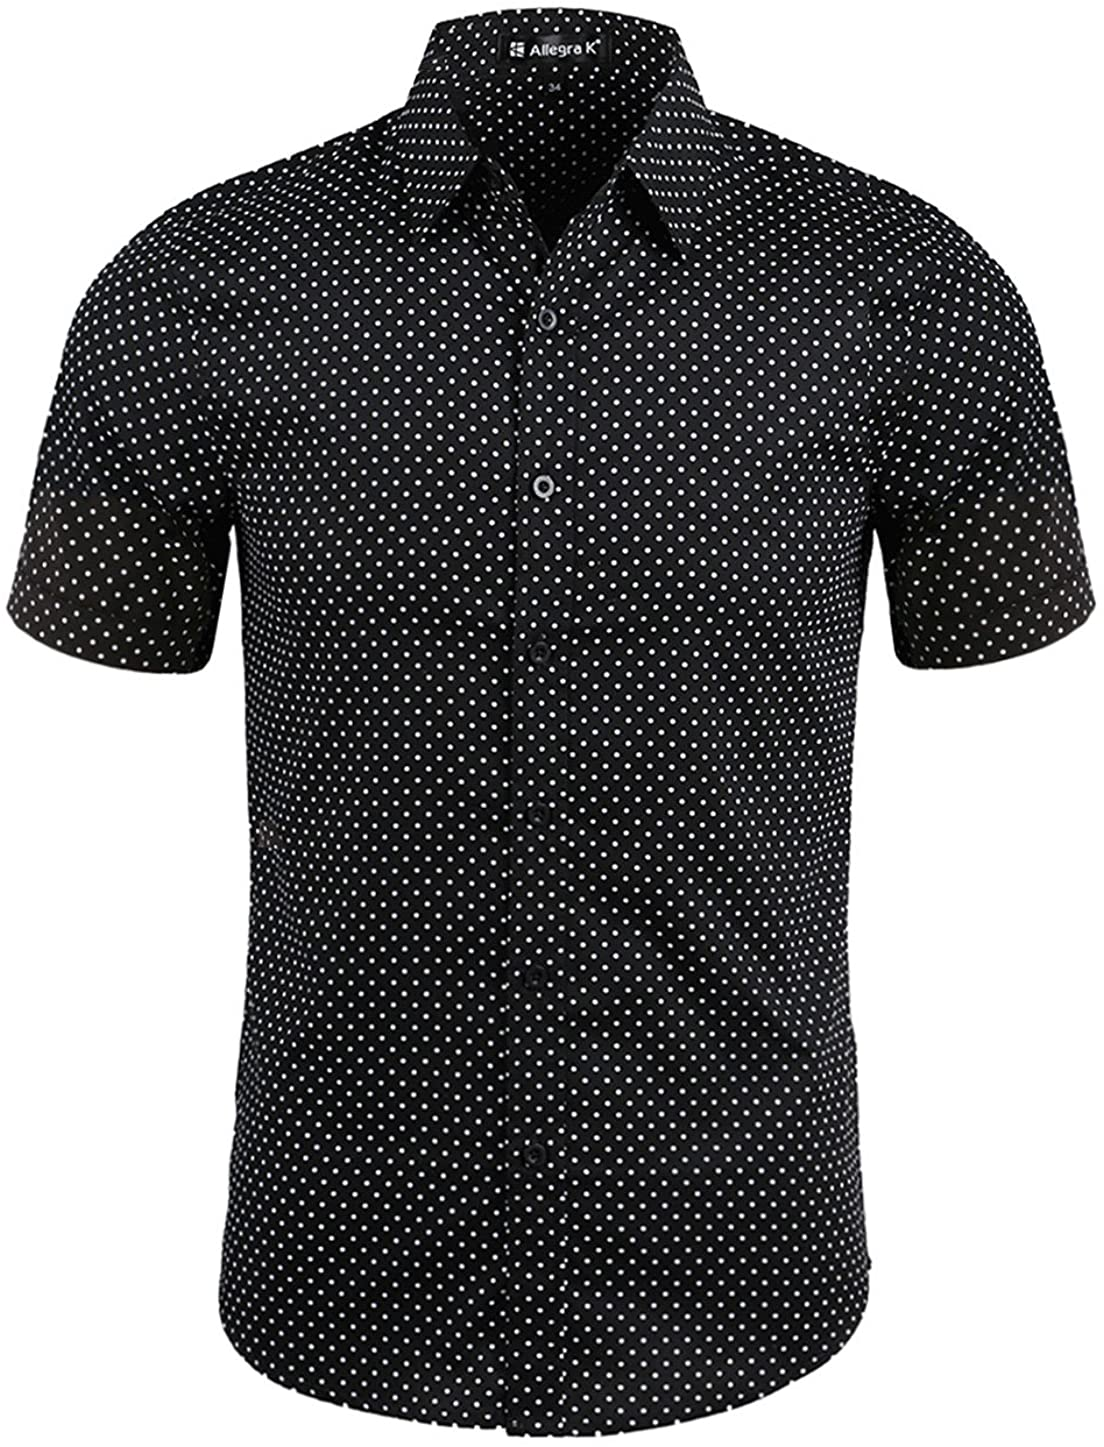 uxcell Men All Over Dots Prints Point Collar Short Sleeves Button Up Shirt